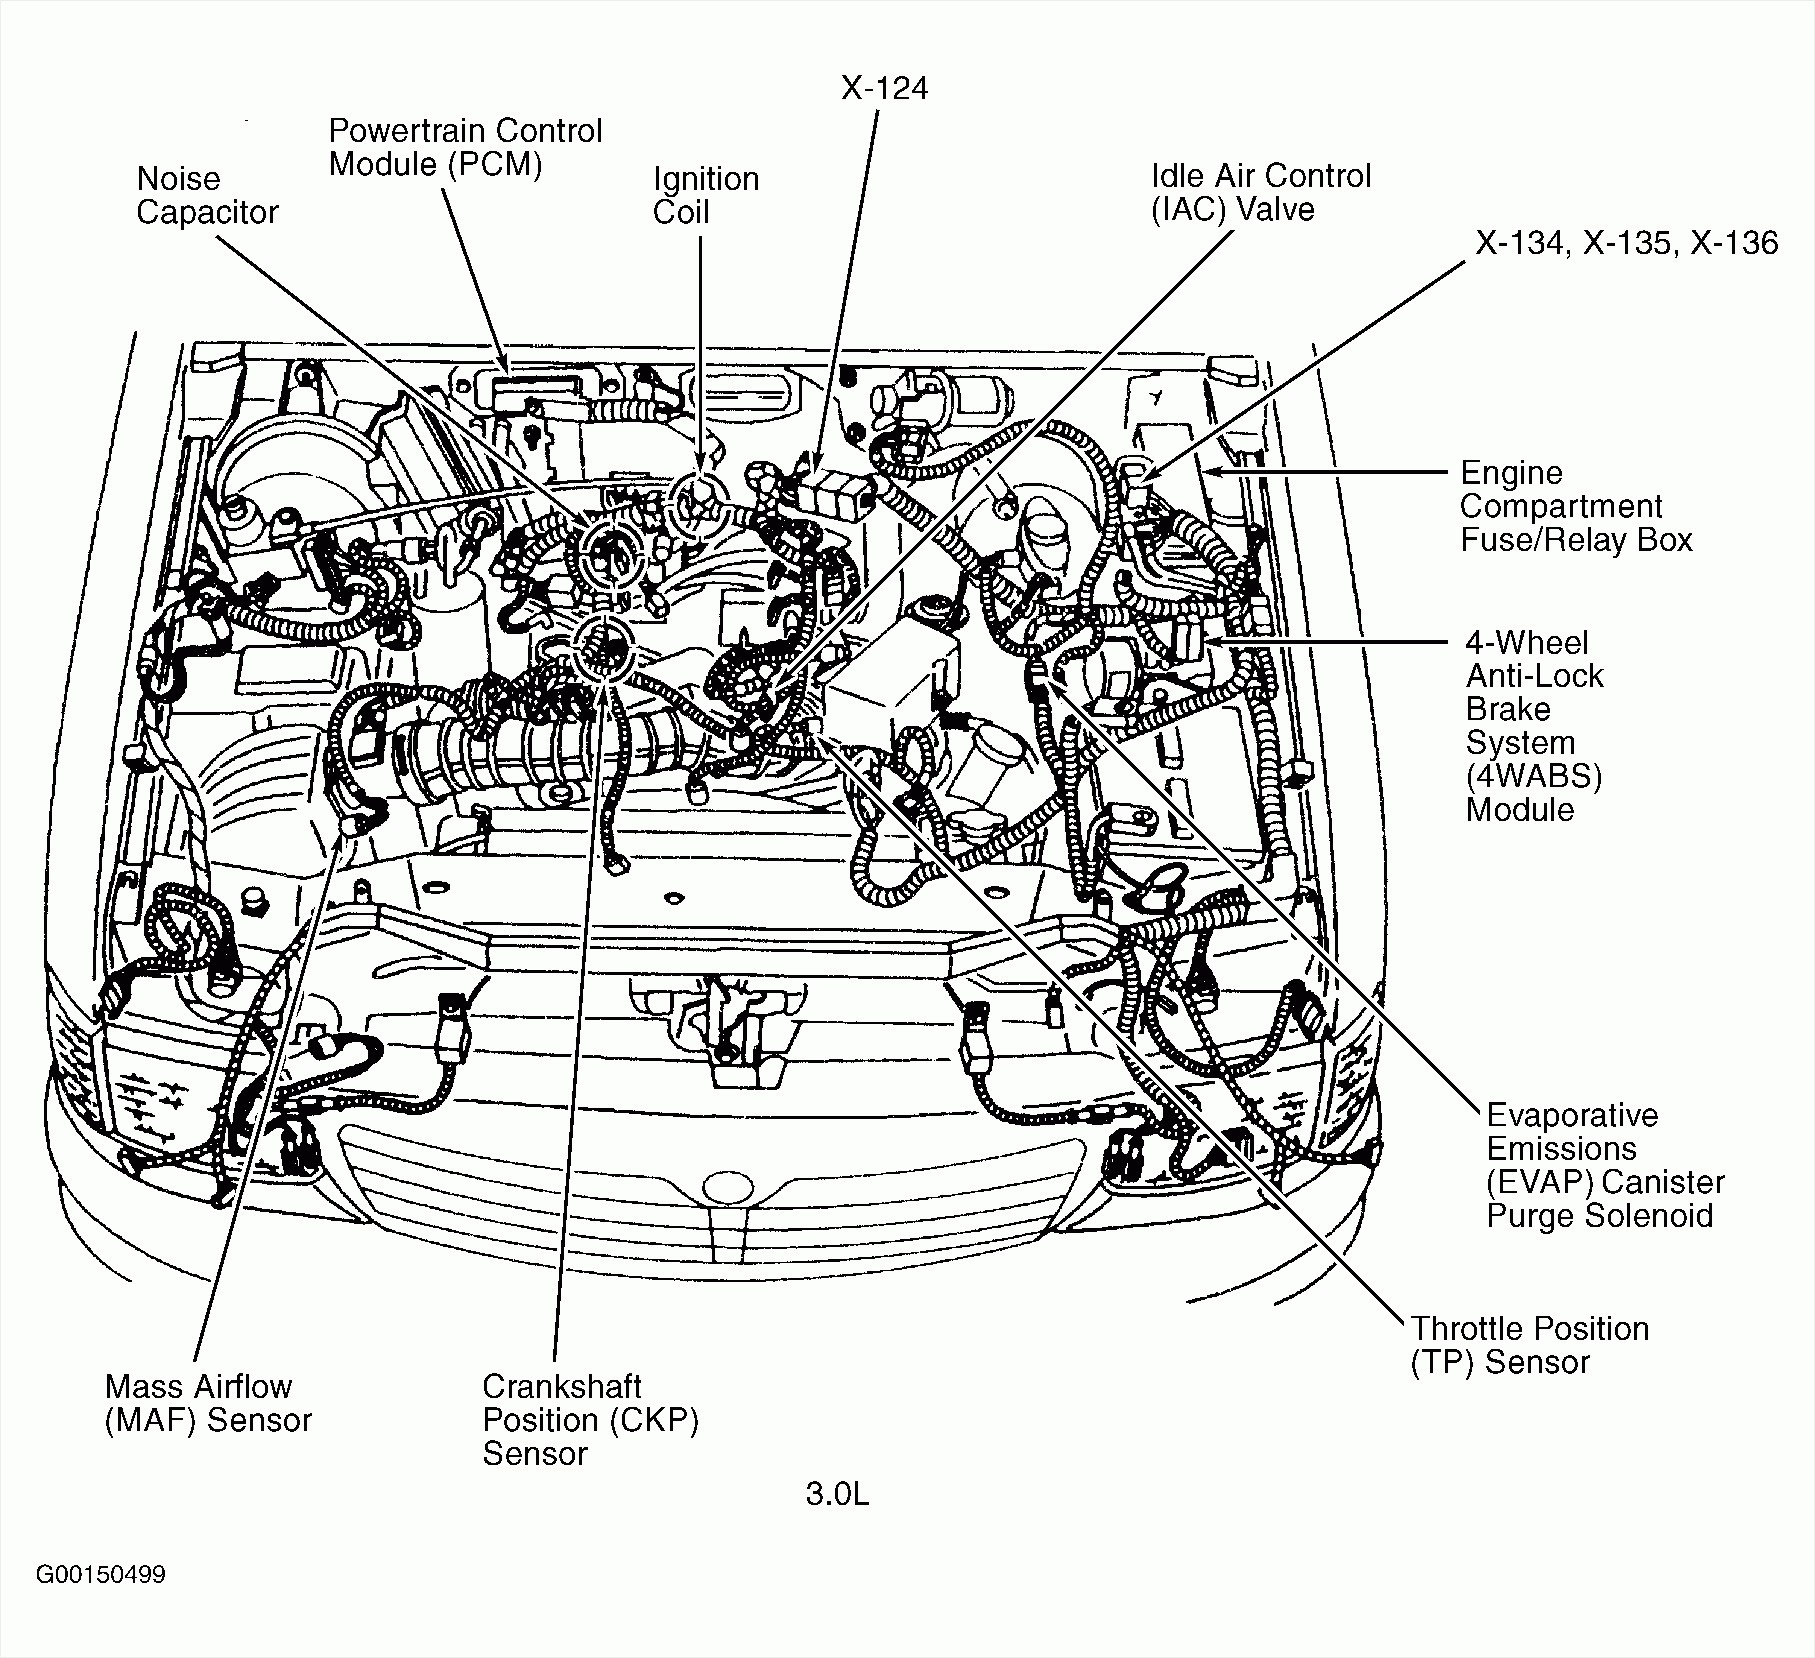 Fuel Pump Ford Ranger Wiring Diagram Ford On 1994 Ford Bronco Fuel